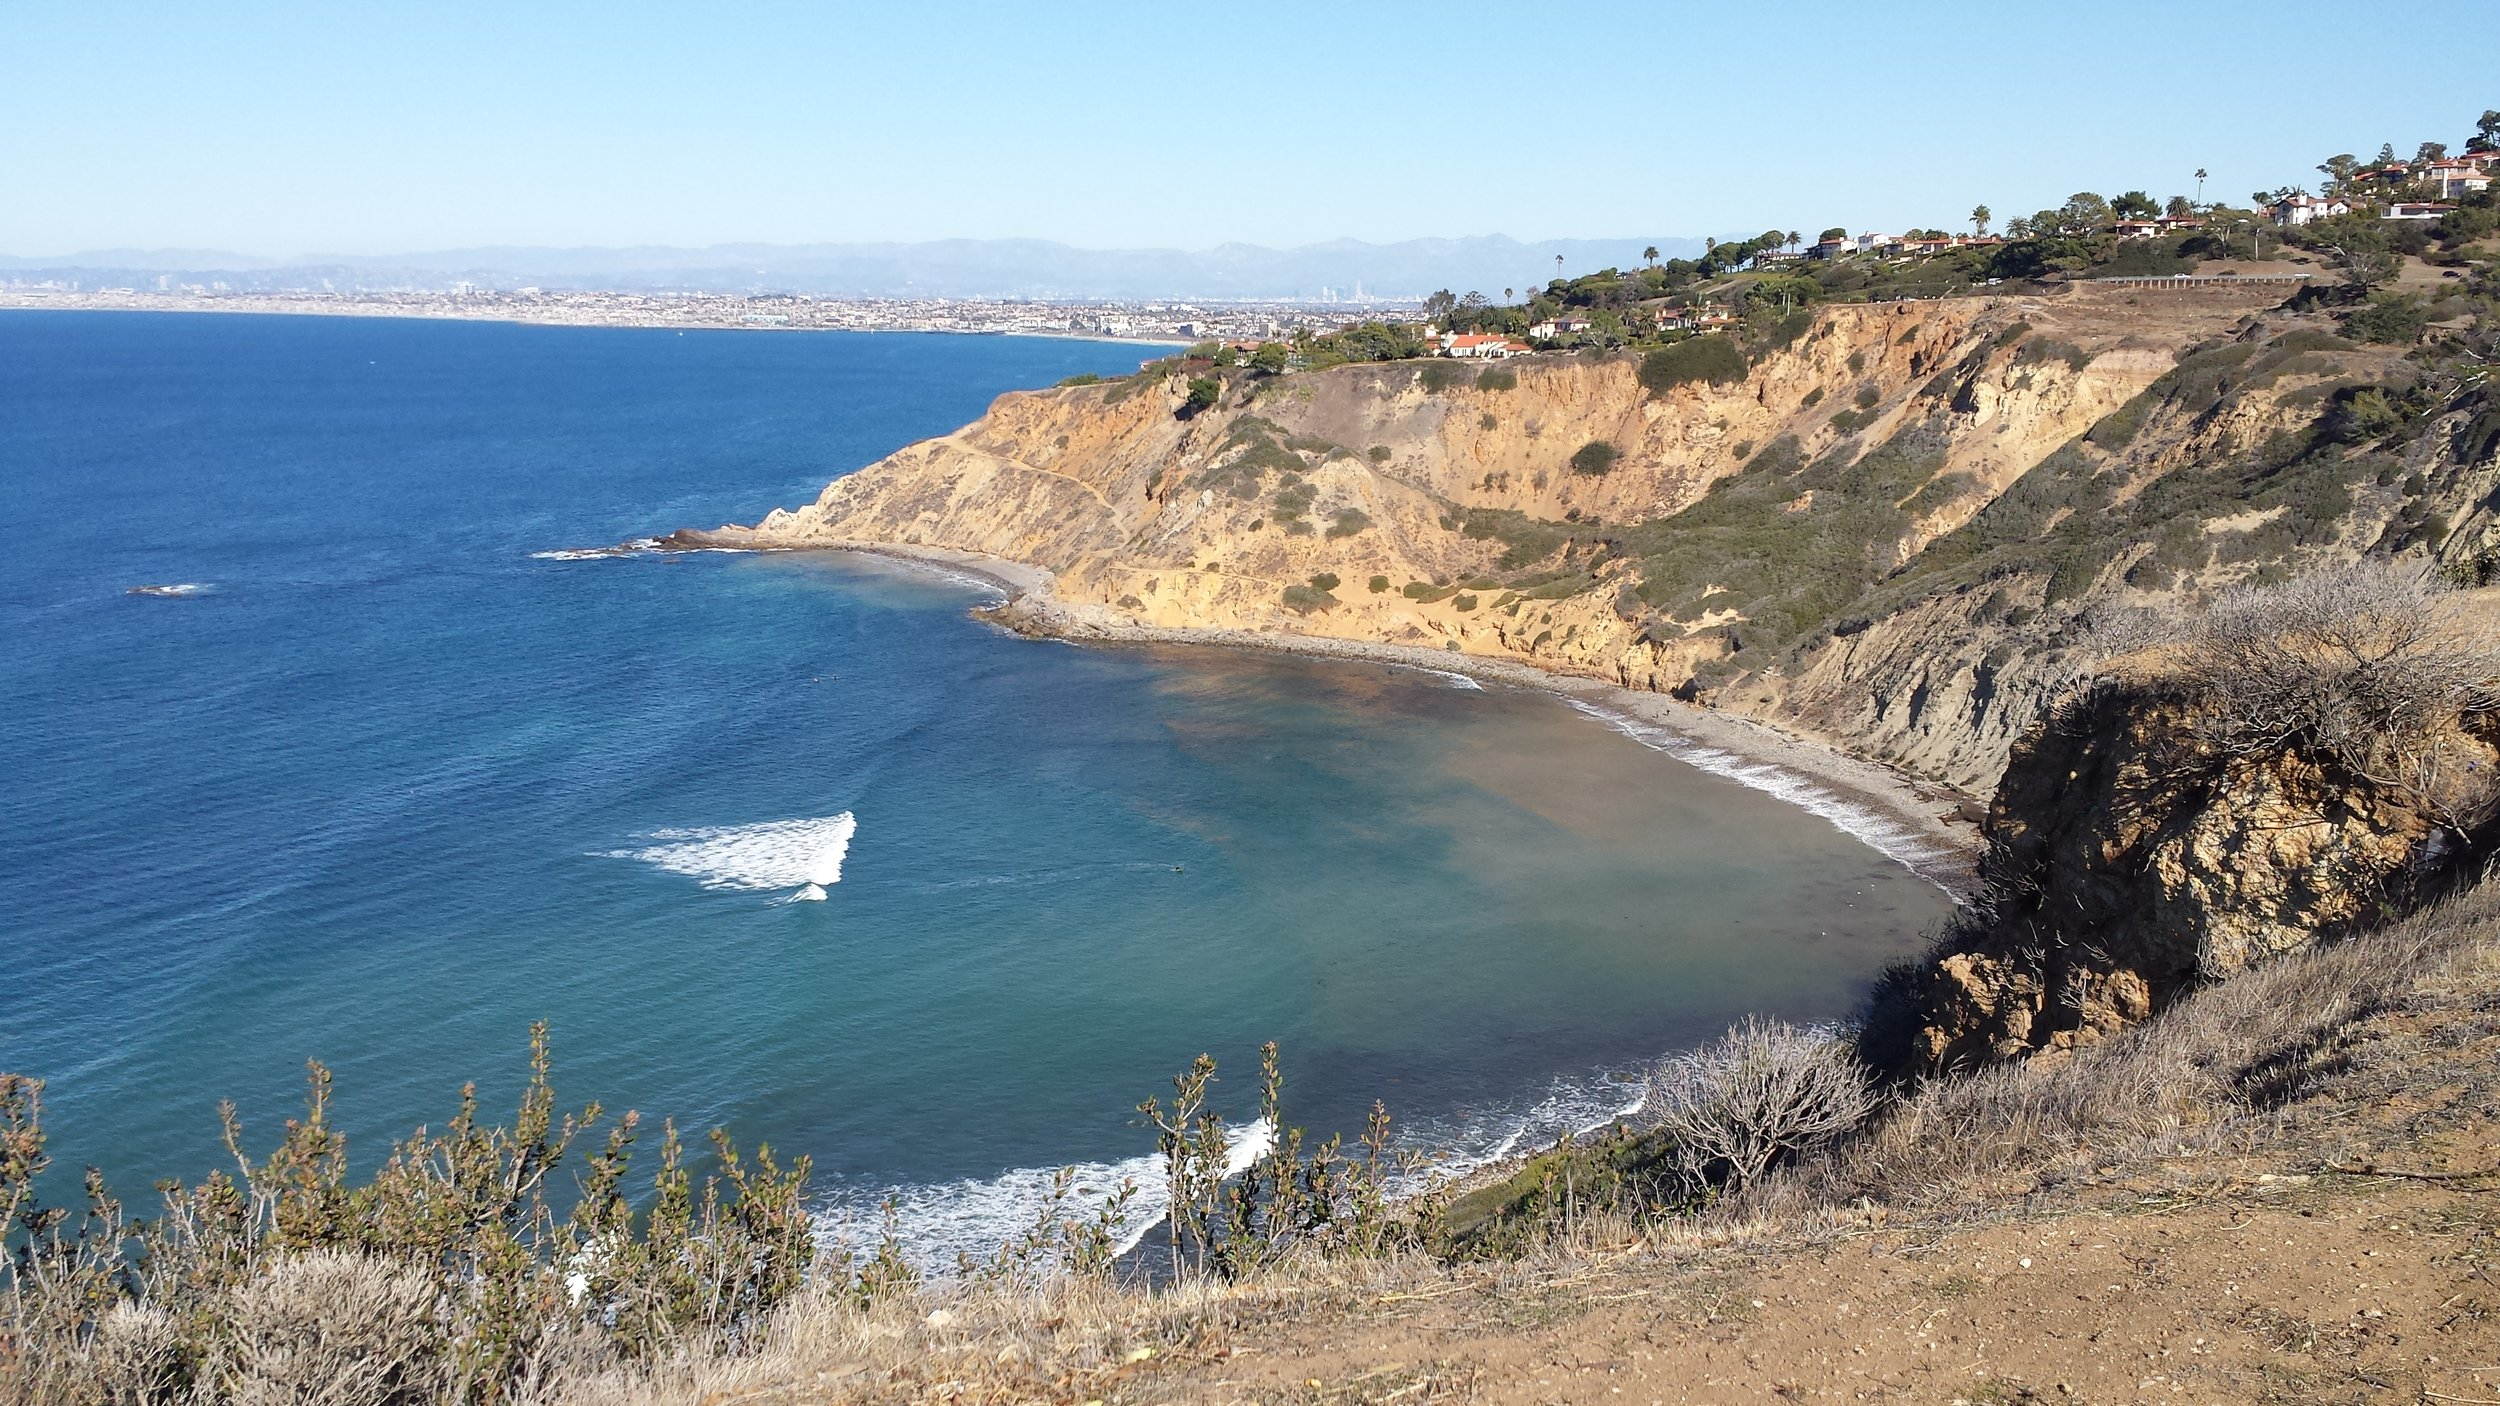 beaches and hiking - Surf, swim, explore tide pools, shop, and play along the coast. Hike in the many parks, or in the Santa Monica mountains.